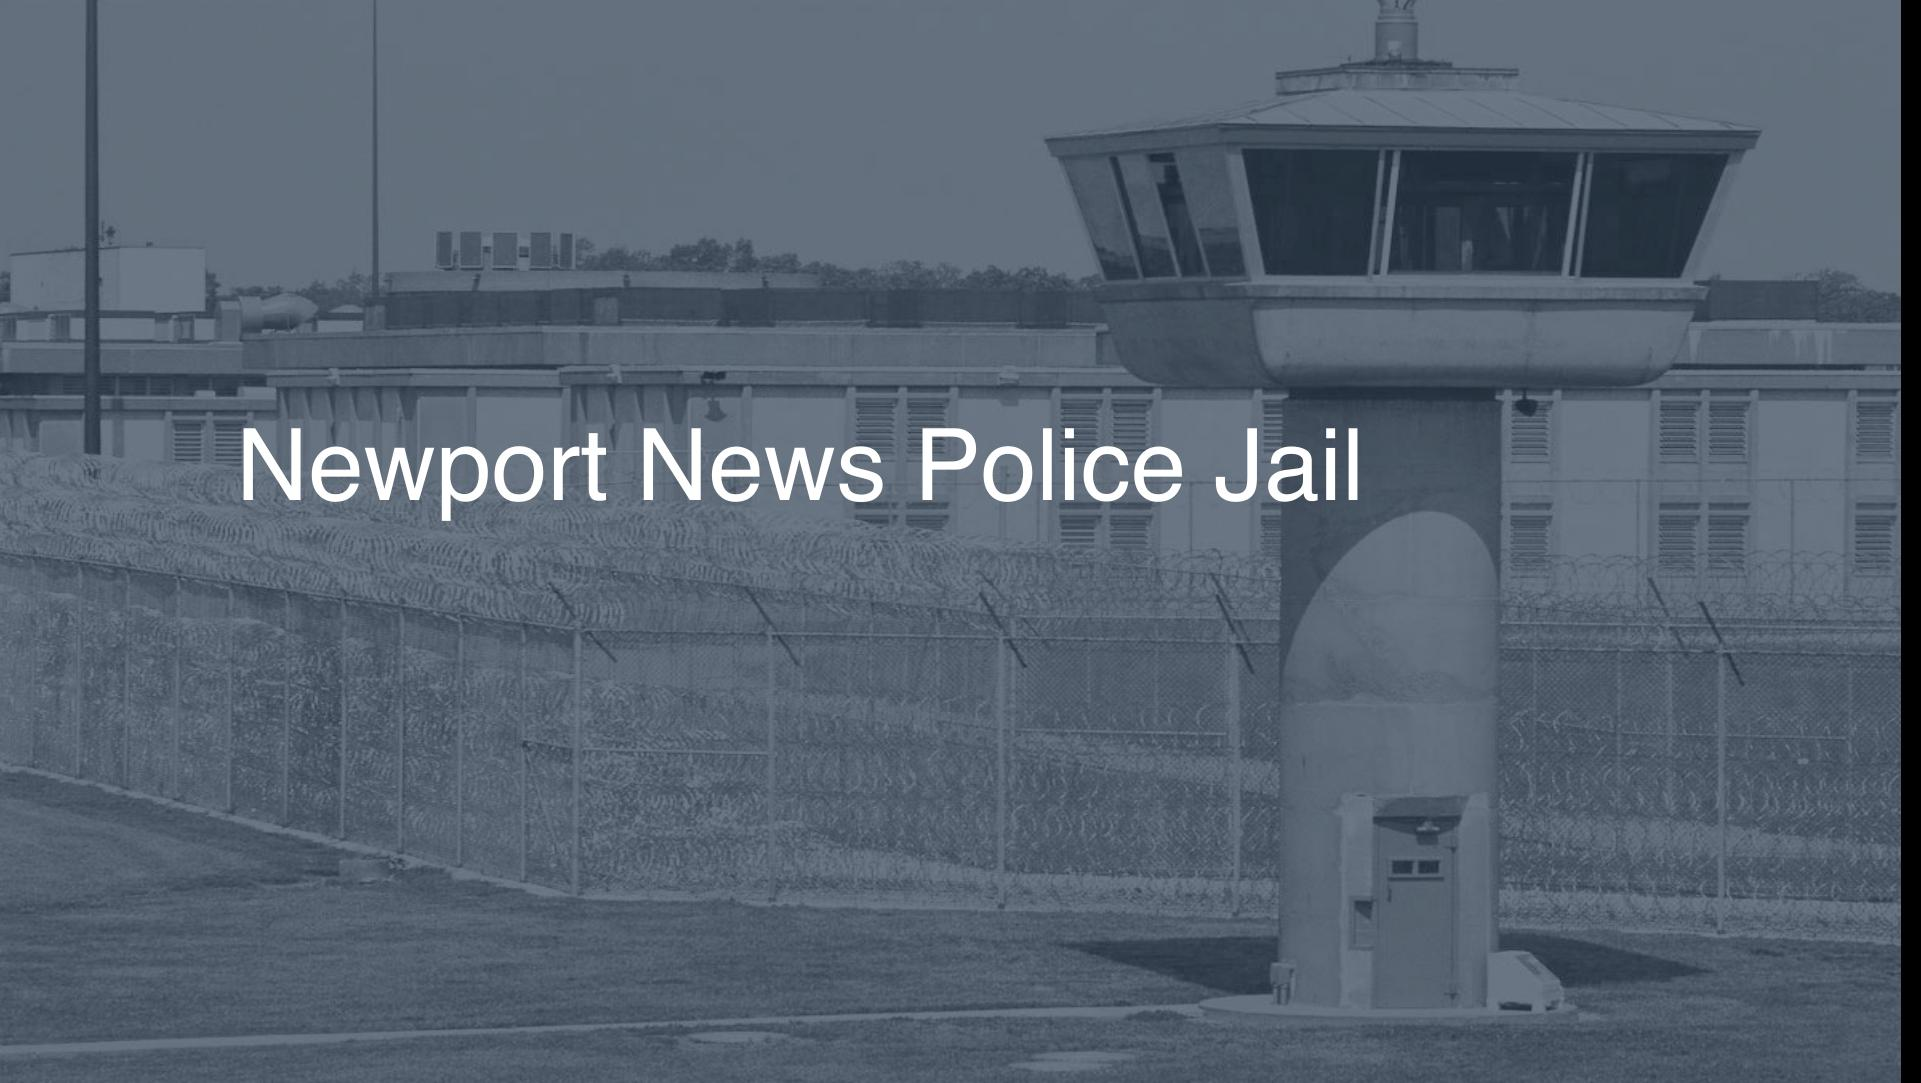 Newport News Police Jail correctional facility picture